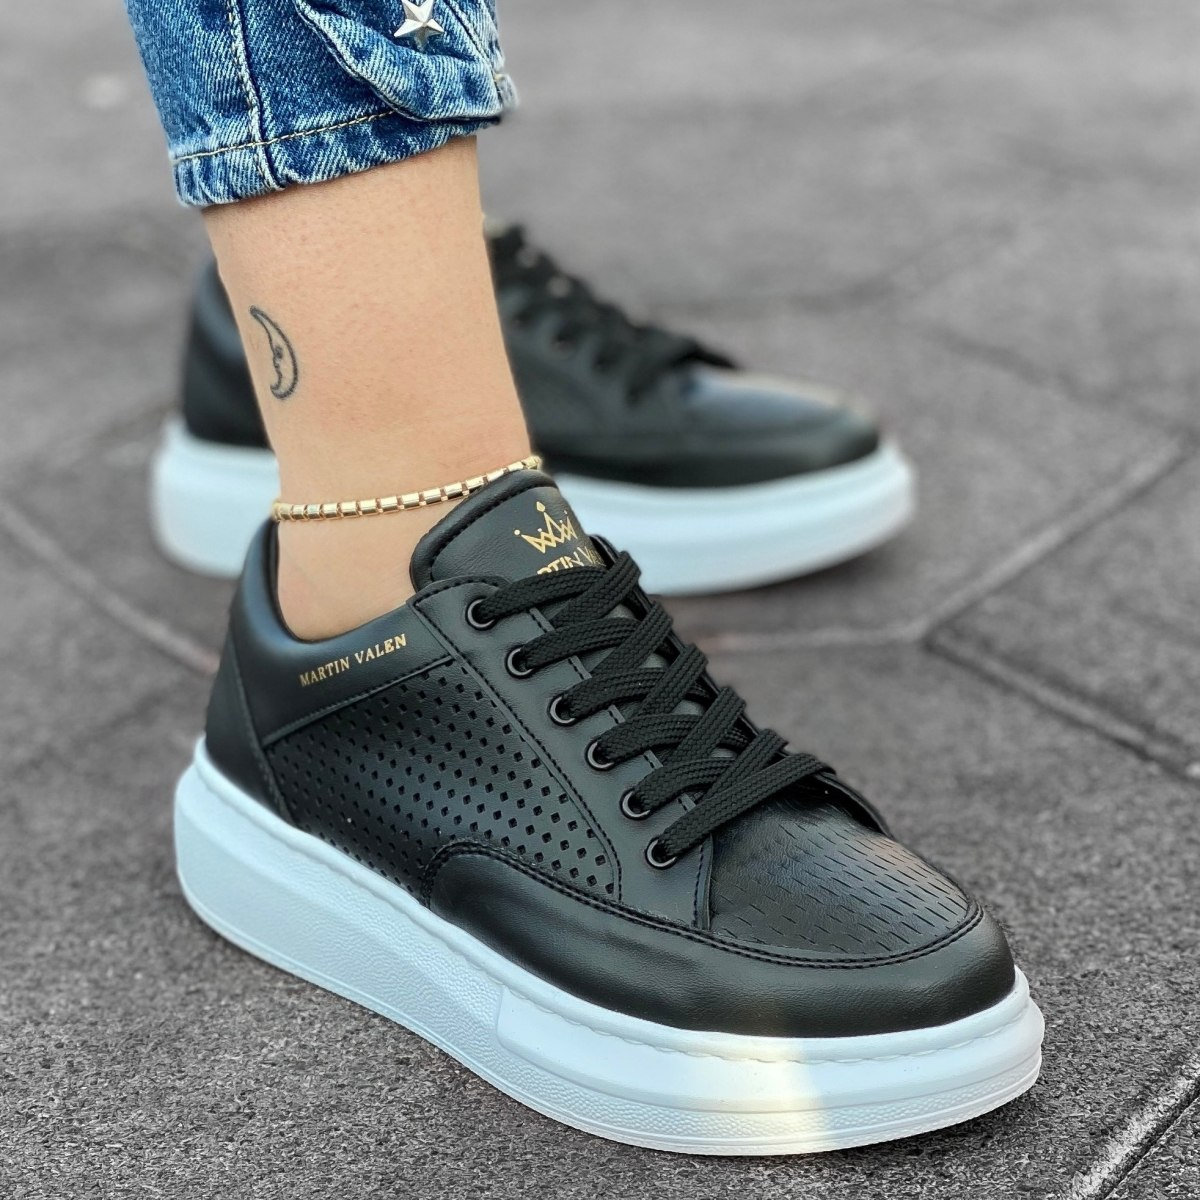 Women's Mega Full Mesh Sneakers in Black-White